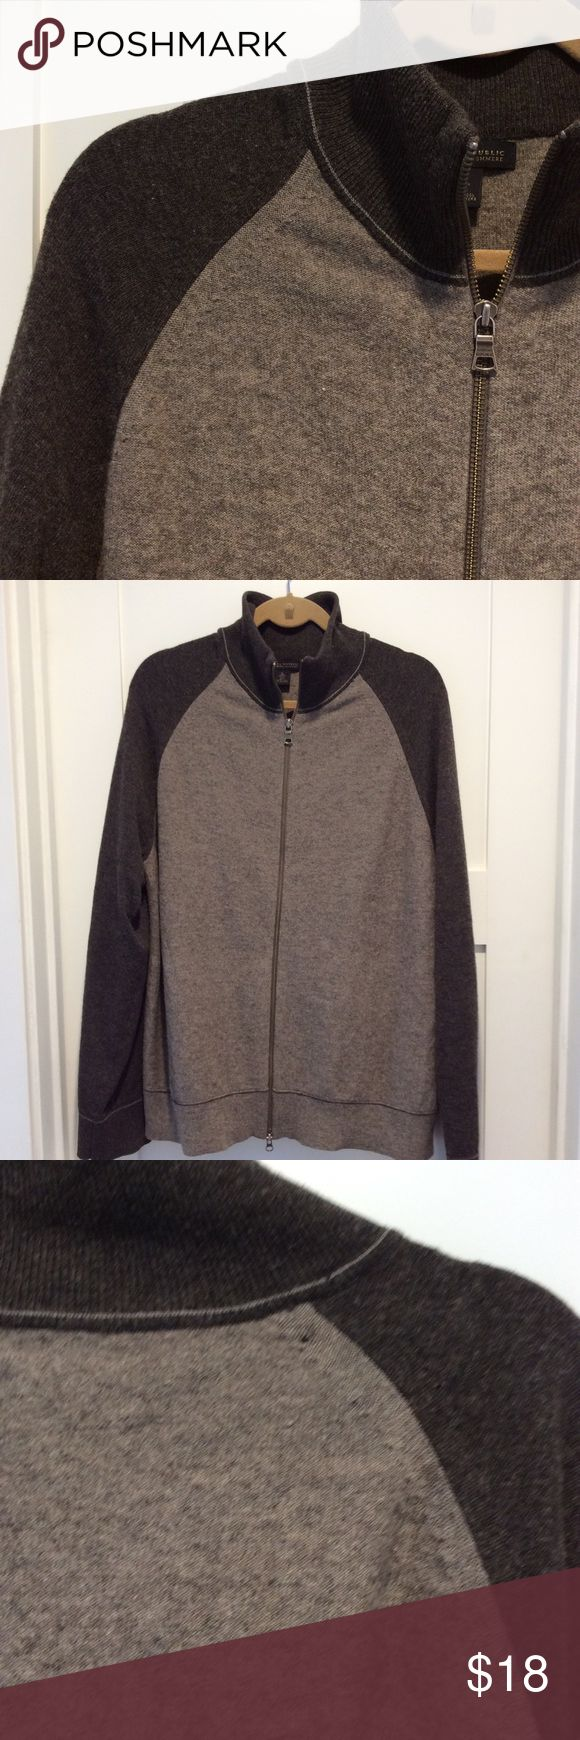 Banana Republic, Men's zip cardigan, XL Light brown/dark brown raglan sleeve full zip cardigan sweater. Made of lambs wool and cashmere.  Warm and cozy! One pin hole on back shoulder (just noticed) please see 3rd picture. Otherwise good condition. Size XL Banana Republic Sweaters Cardigan